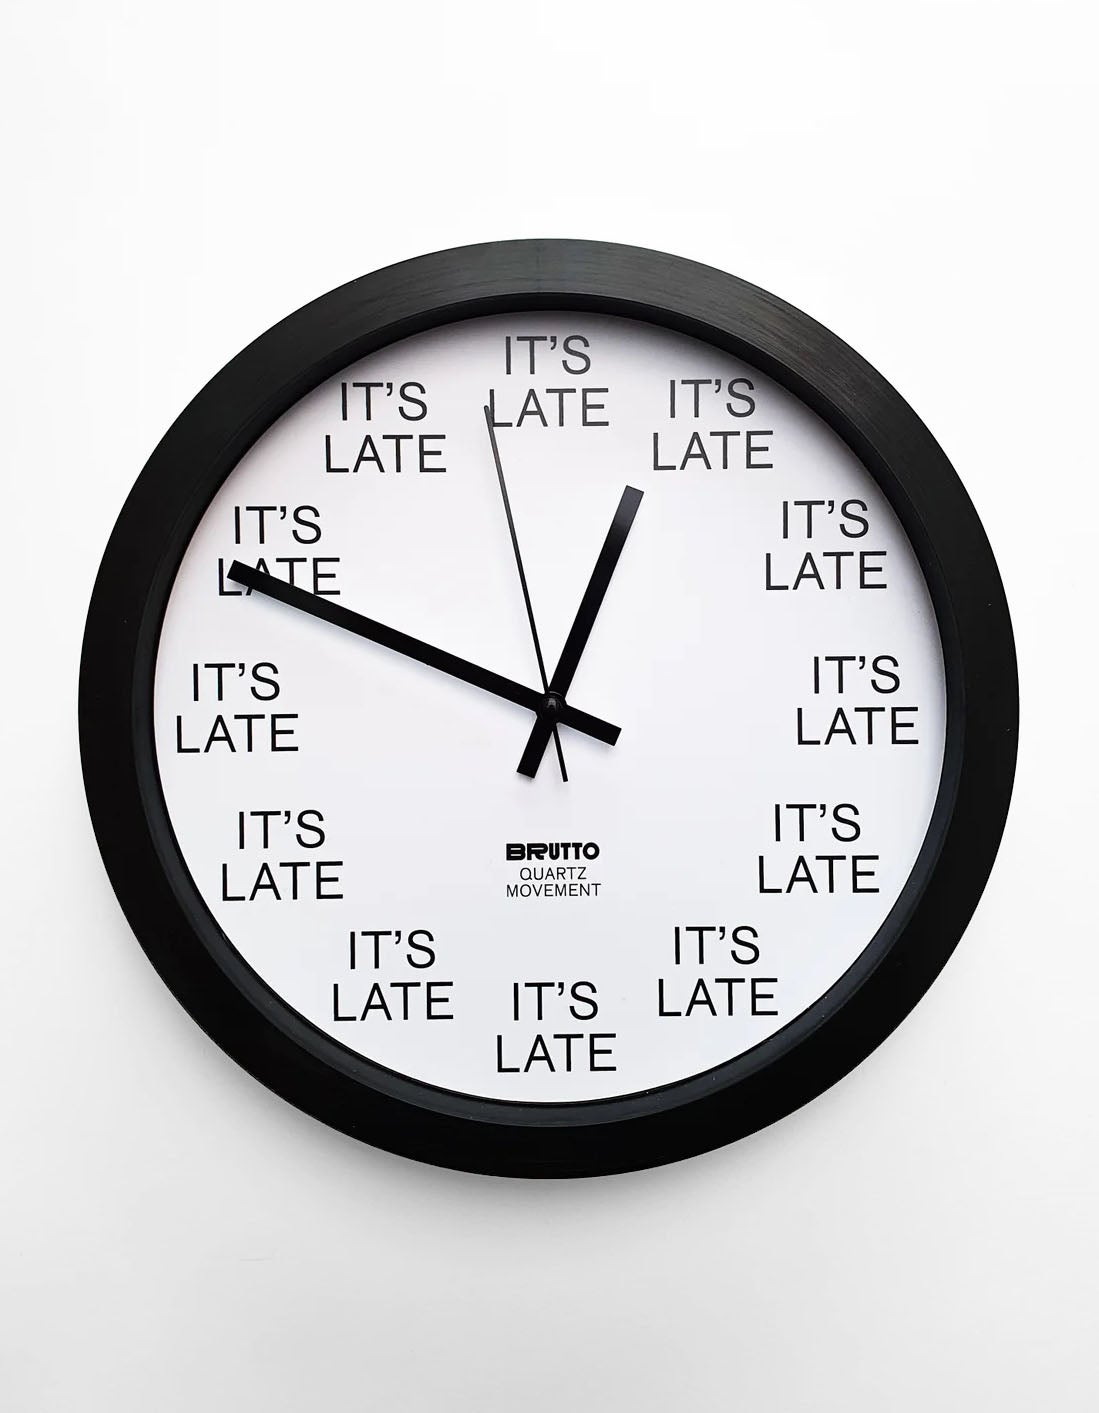 Image of IT'S LATE wall clock